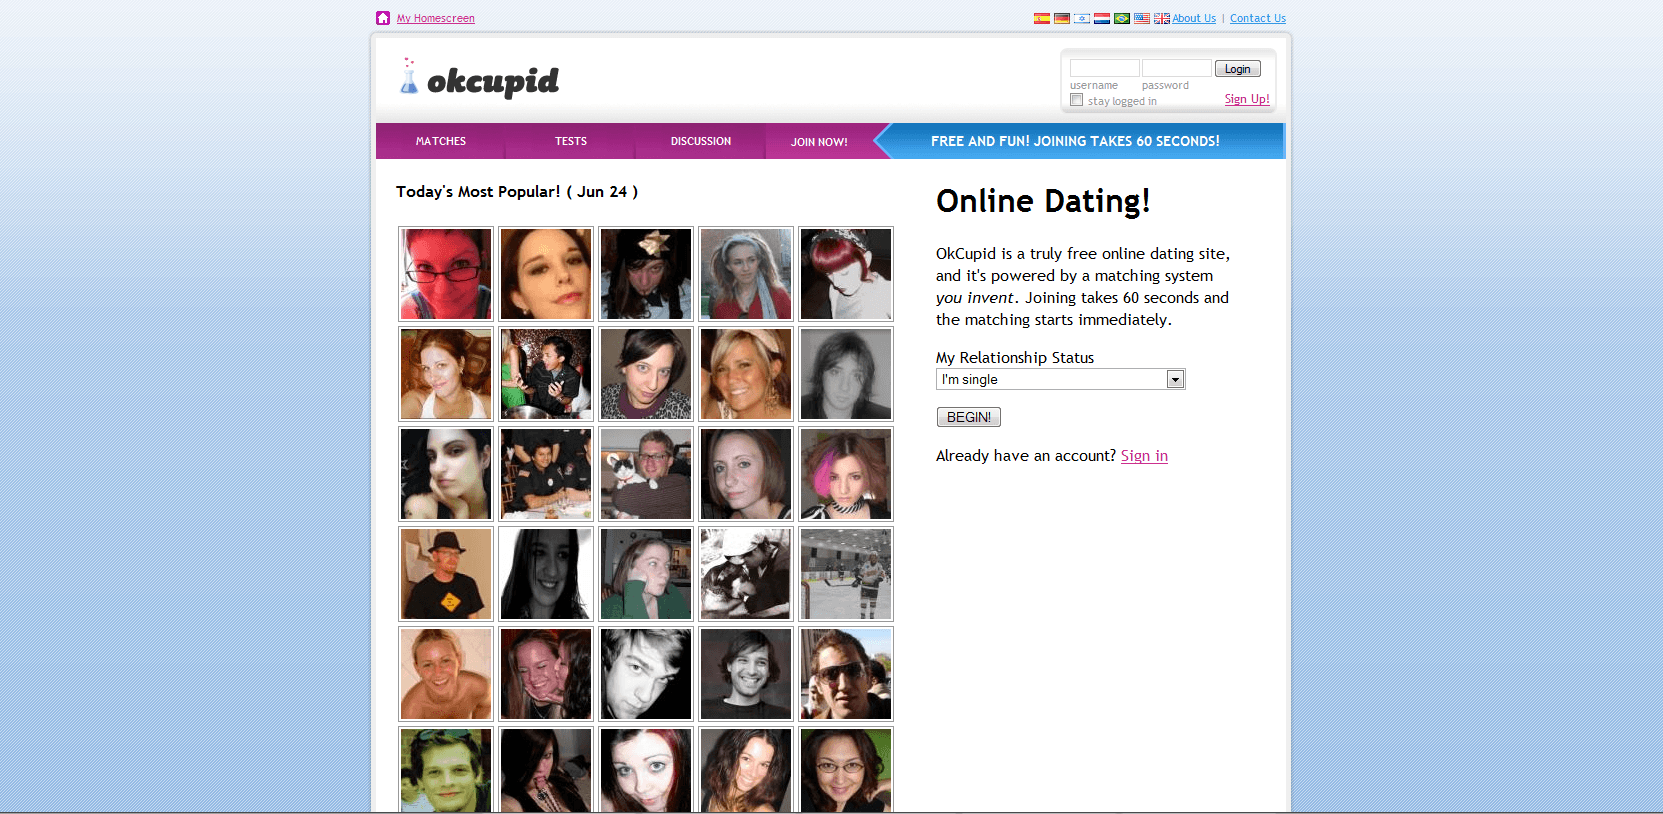 usa pay dating website members